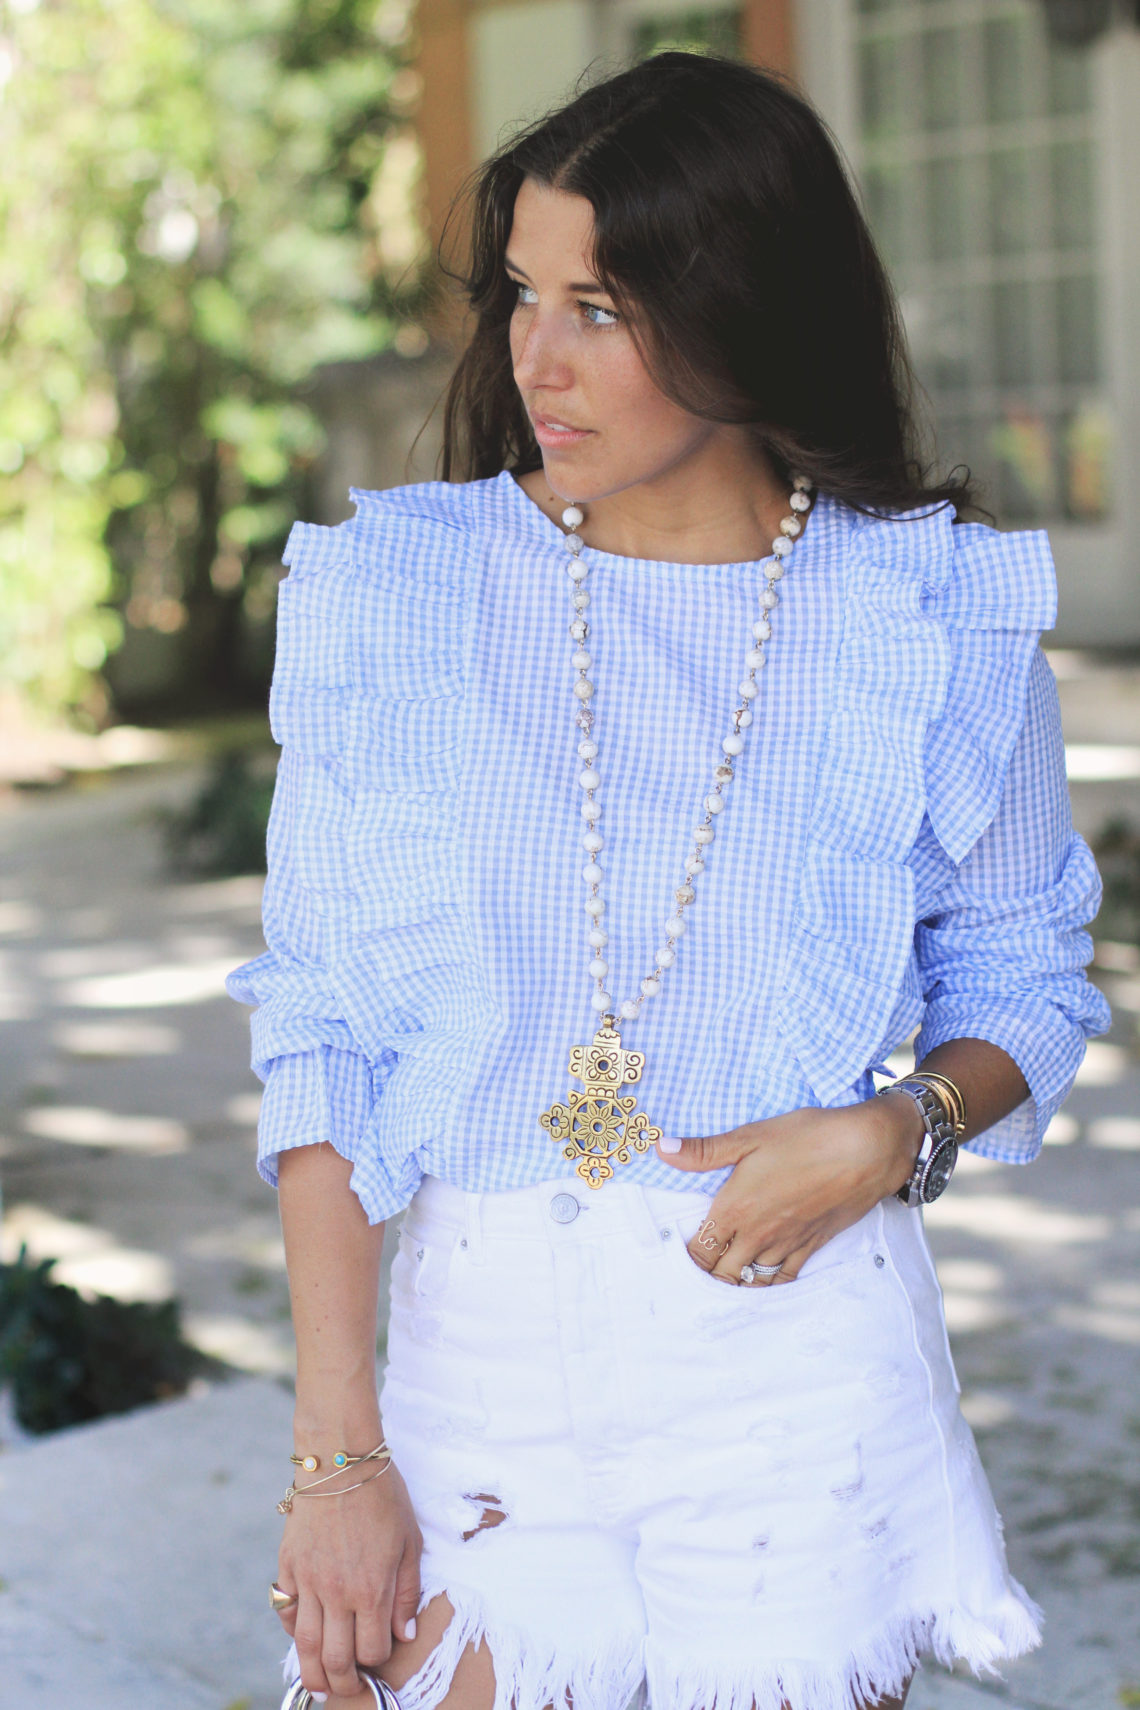 Gingham Ruffle Top & Blue Suede Shoes